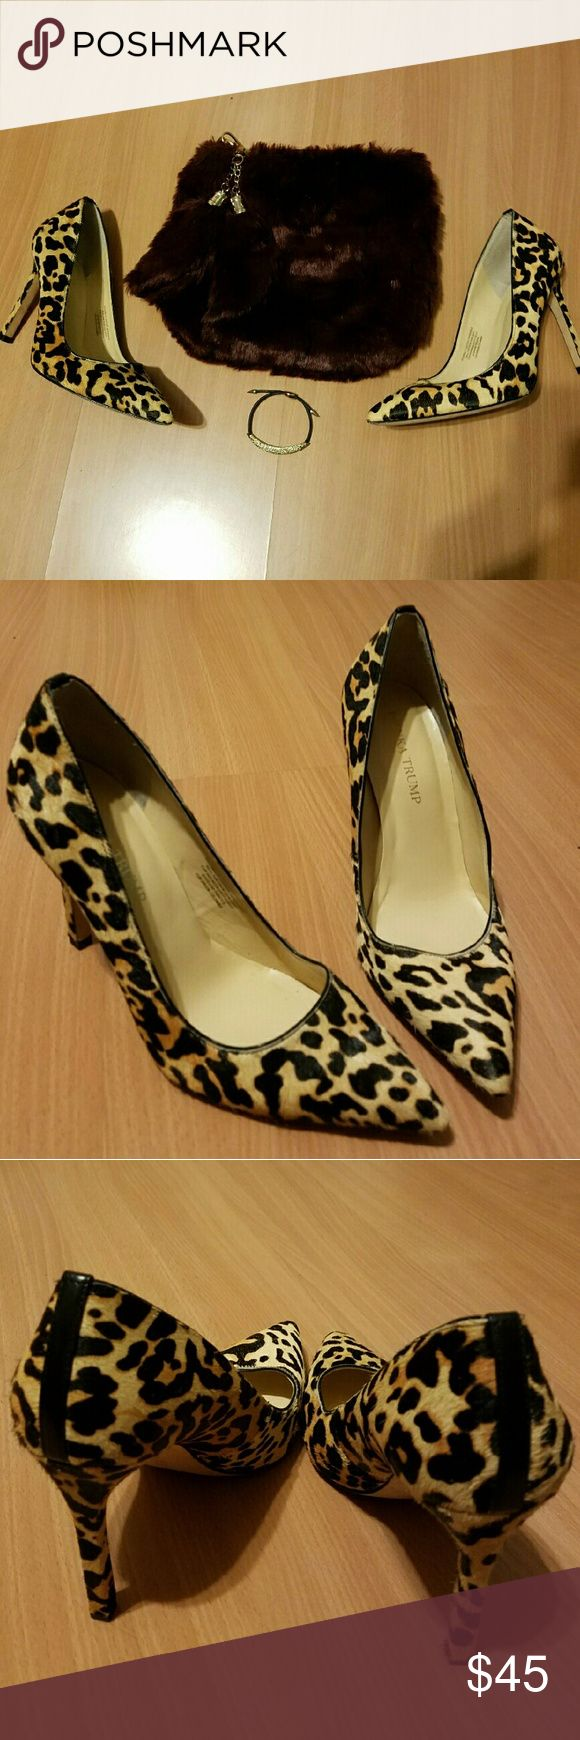 Calf Fur Long Hair Cheetah Print Pointed Toe Pumps Great Condition. Worn once to a wedding. Only worn on soles. Hair is not broken or bald. Pointed toes are not smashed.  Long Hair Cheetah Printed Pointed Toe Pumps.  Fur Info see Photo. Ivanka Trump Shoes Heels